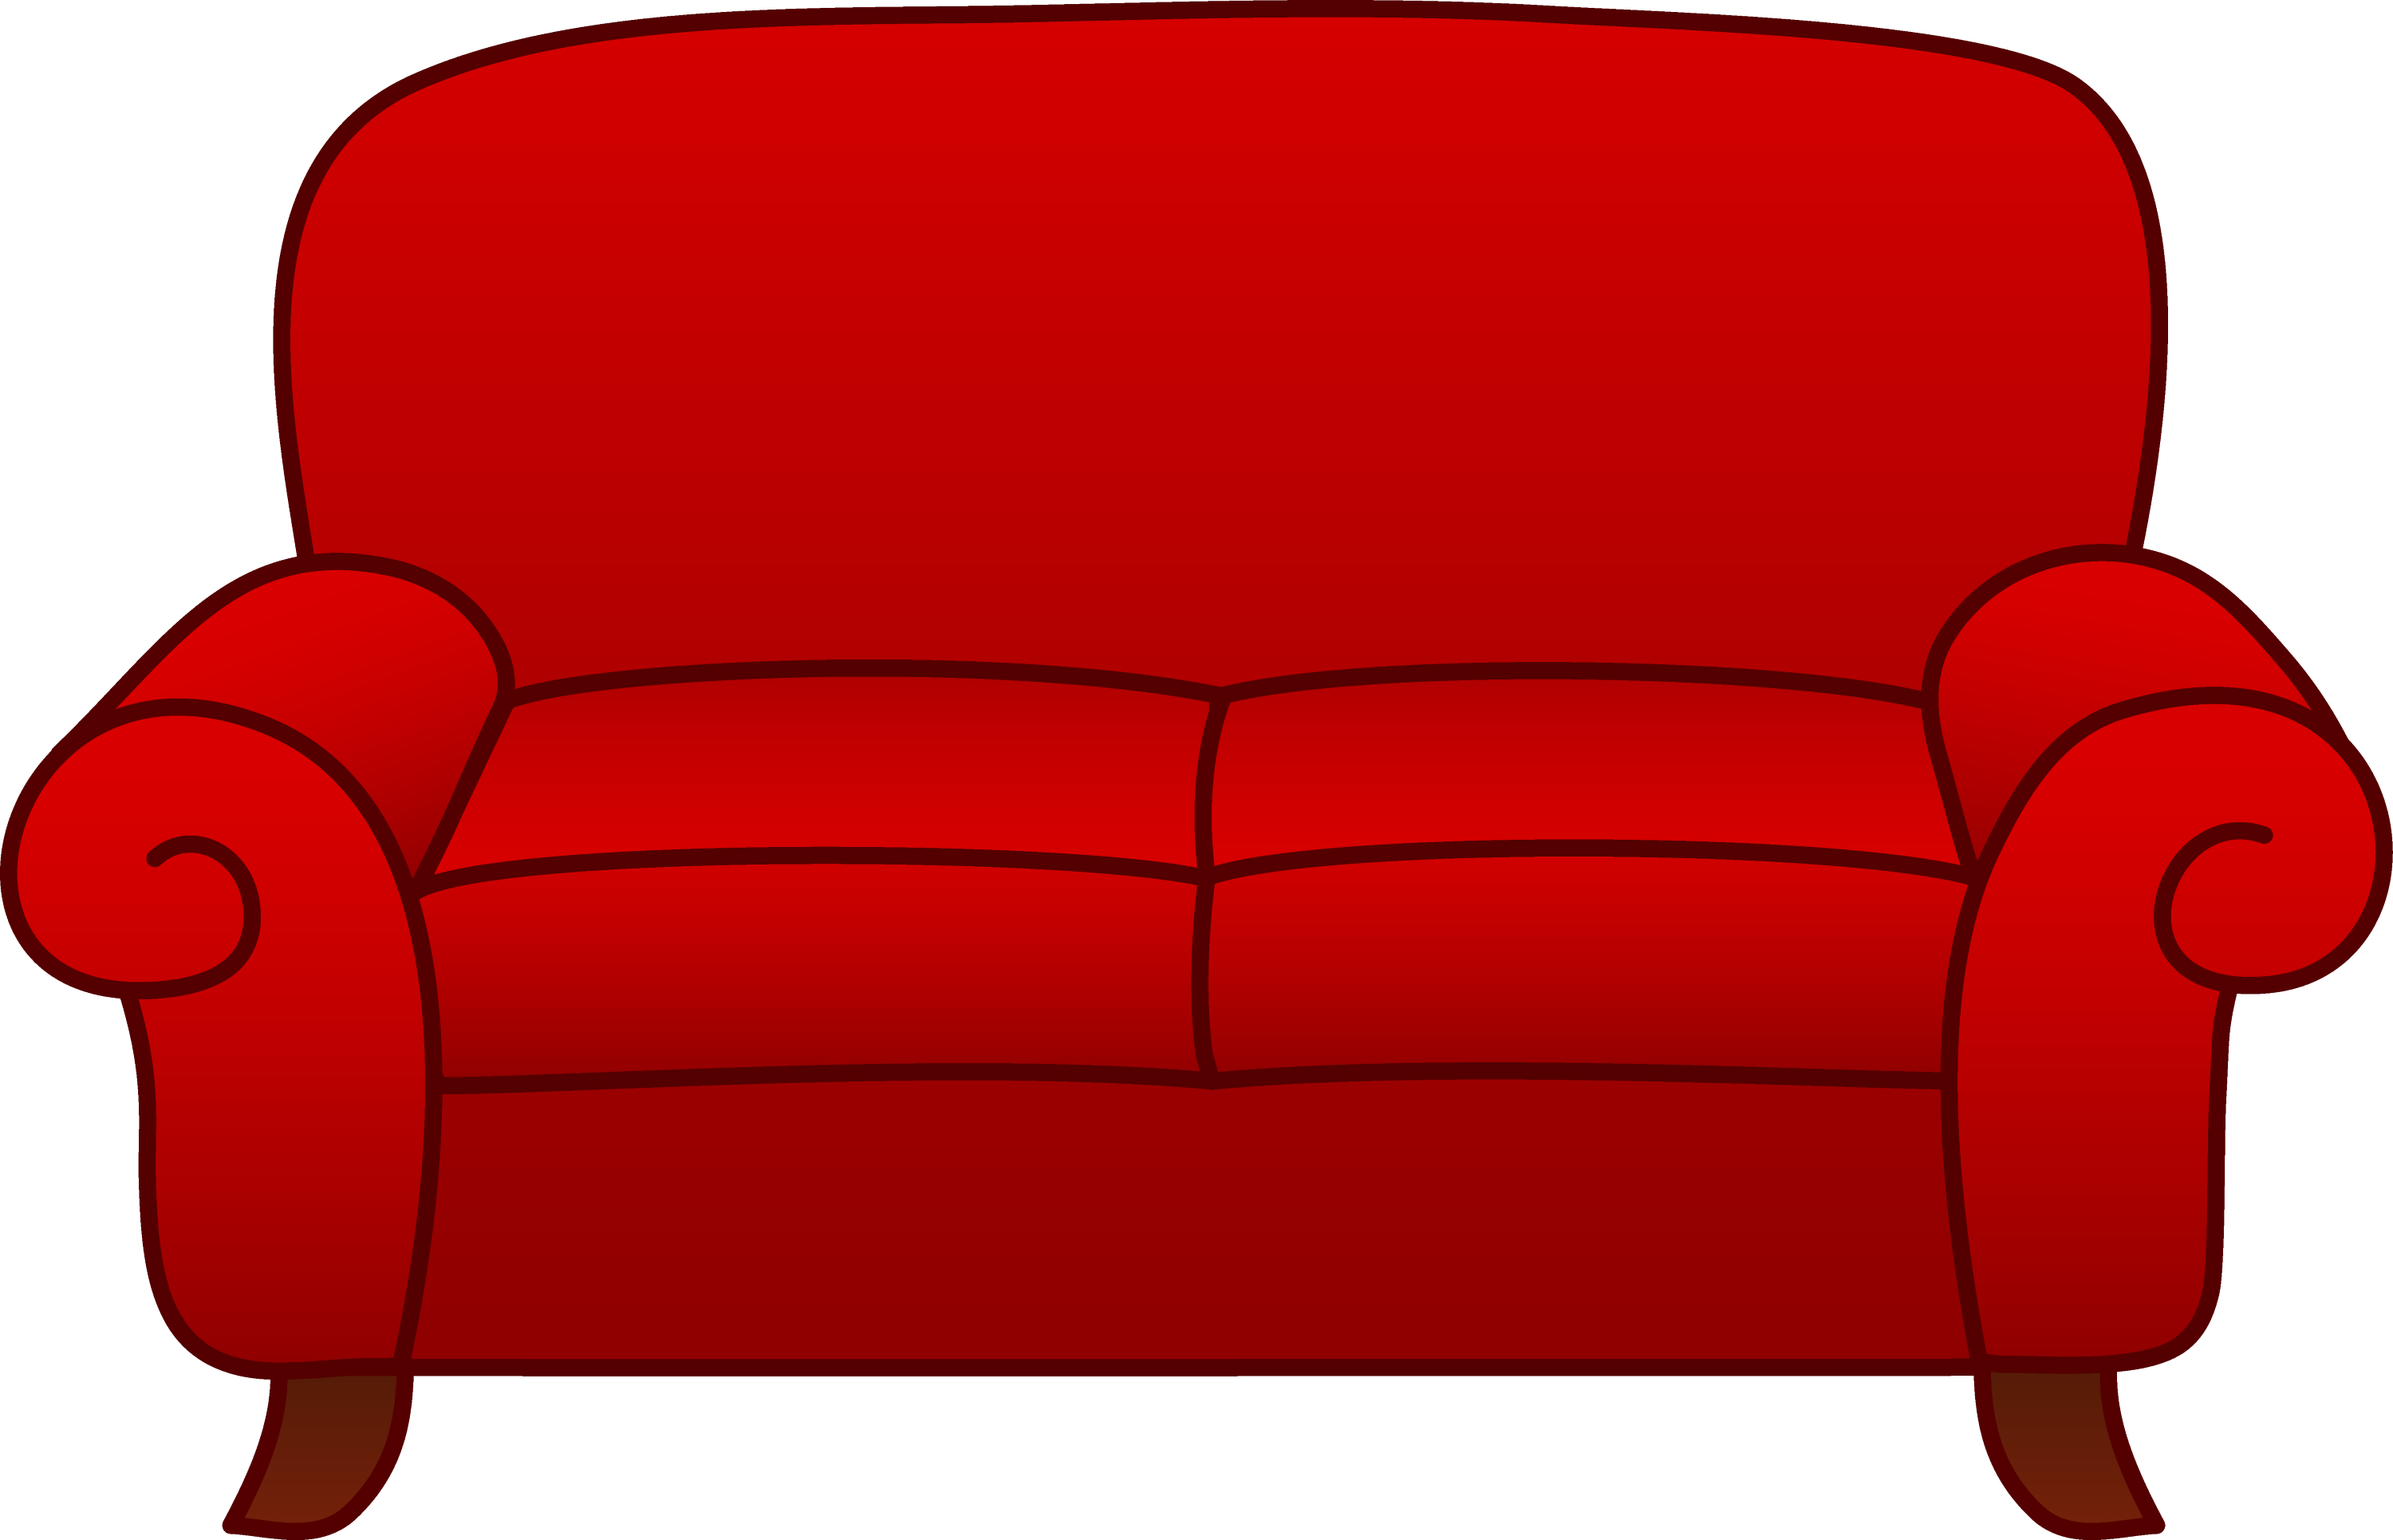 red living room sofa free clip art rh sweetclipart com clipart bébé couché clip art crochet stitch